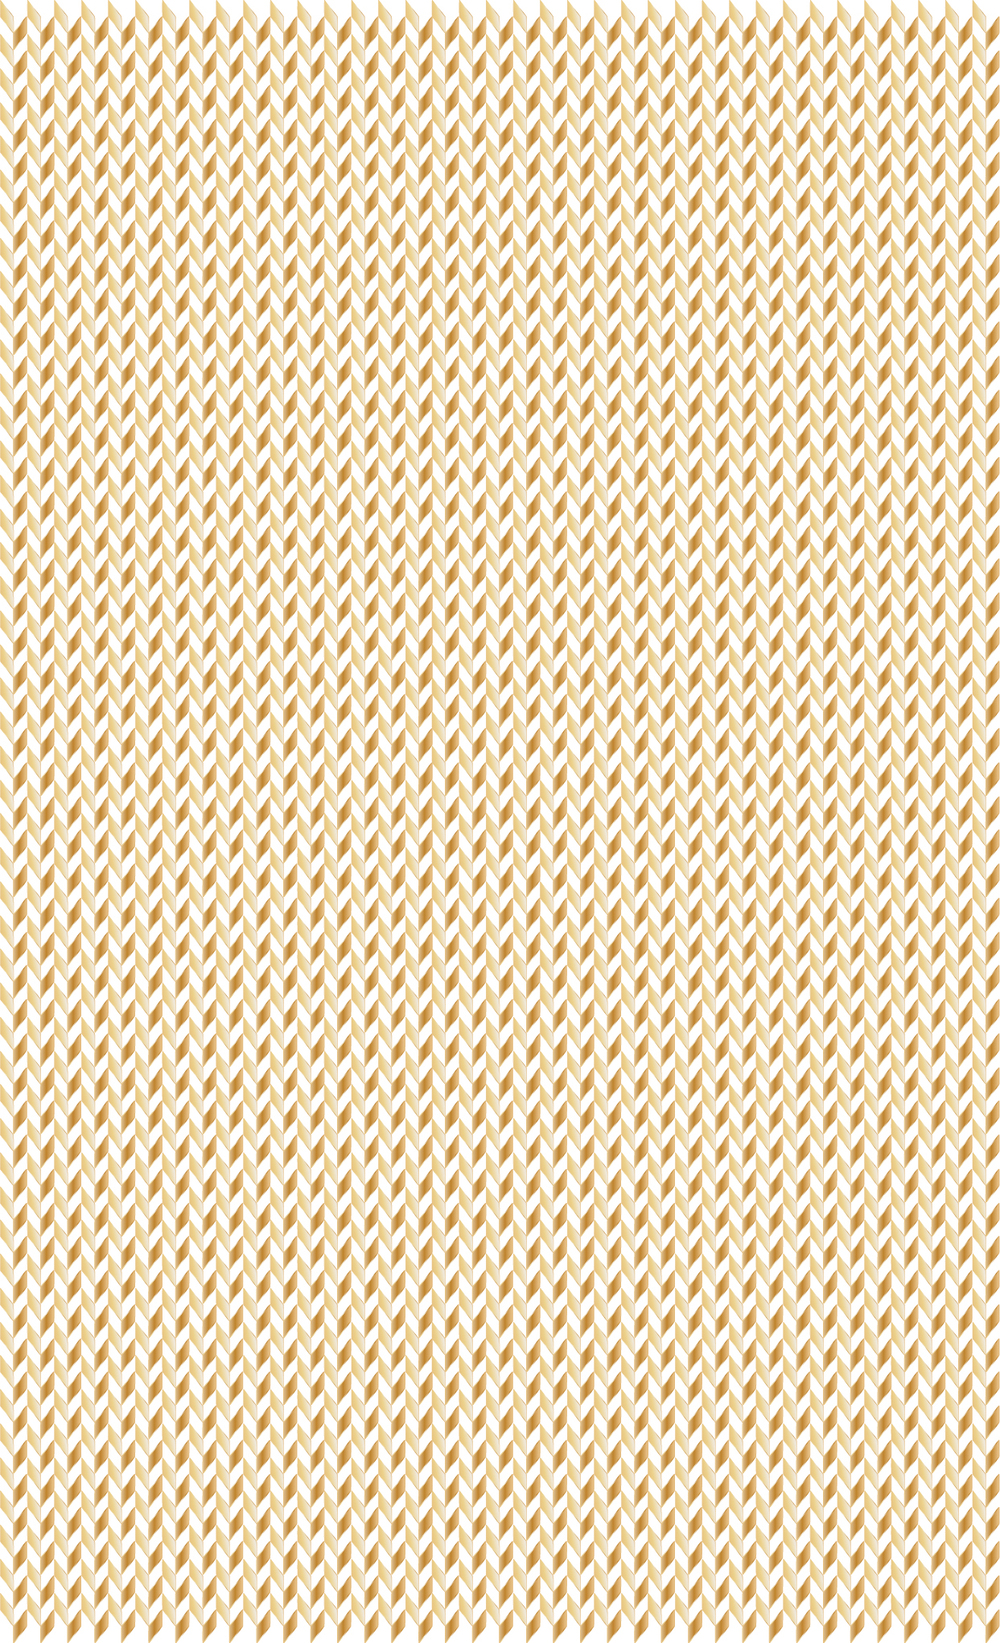 songa pattern gold.jpg